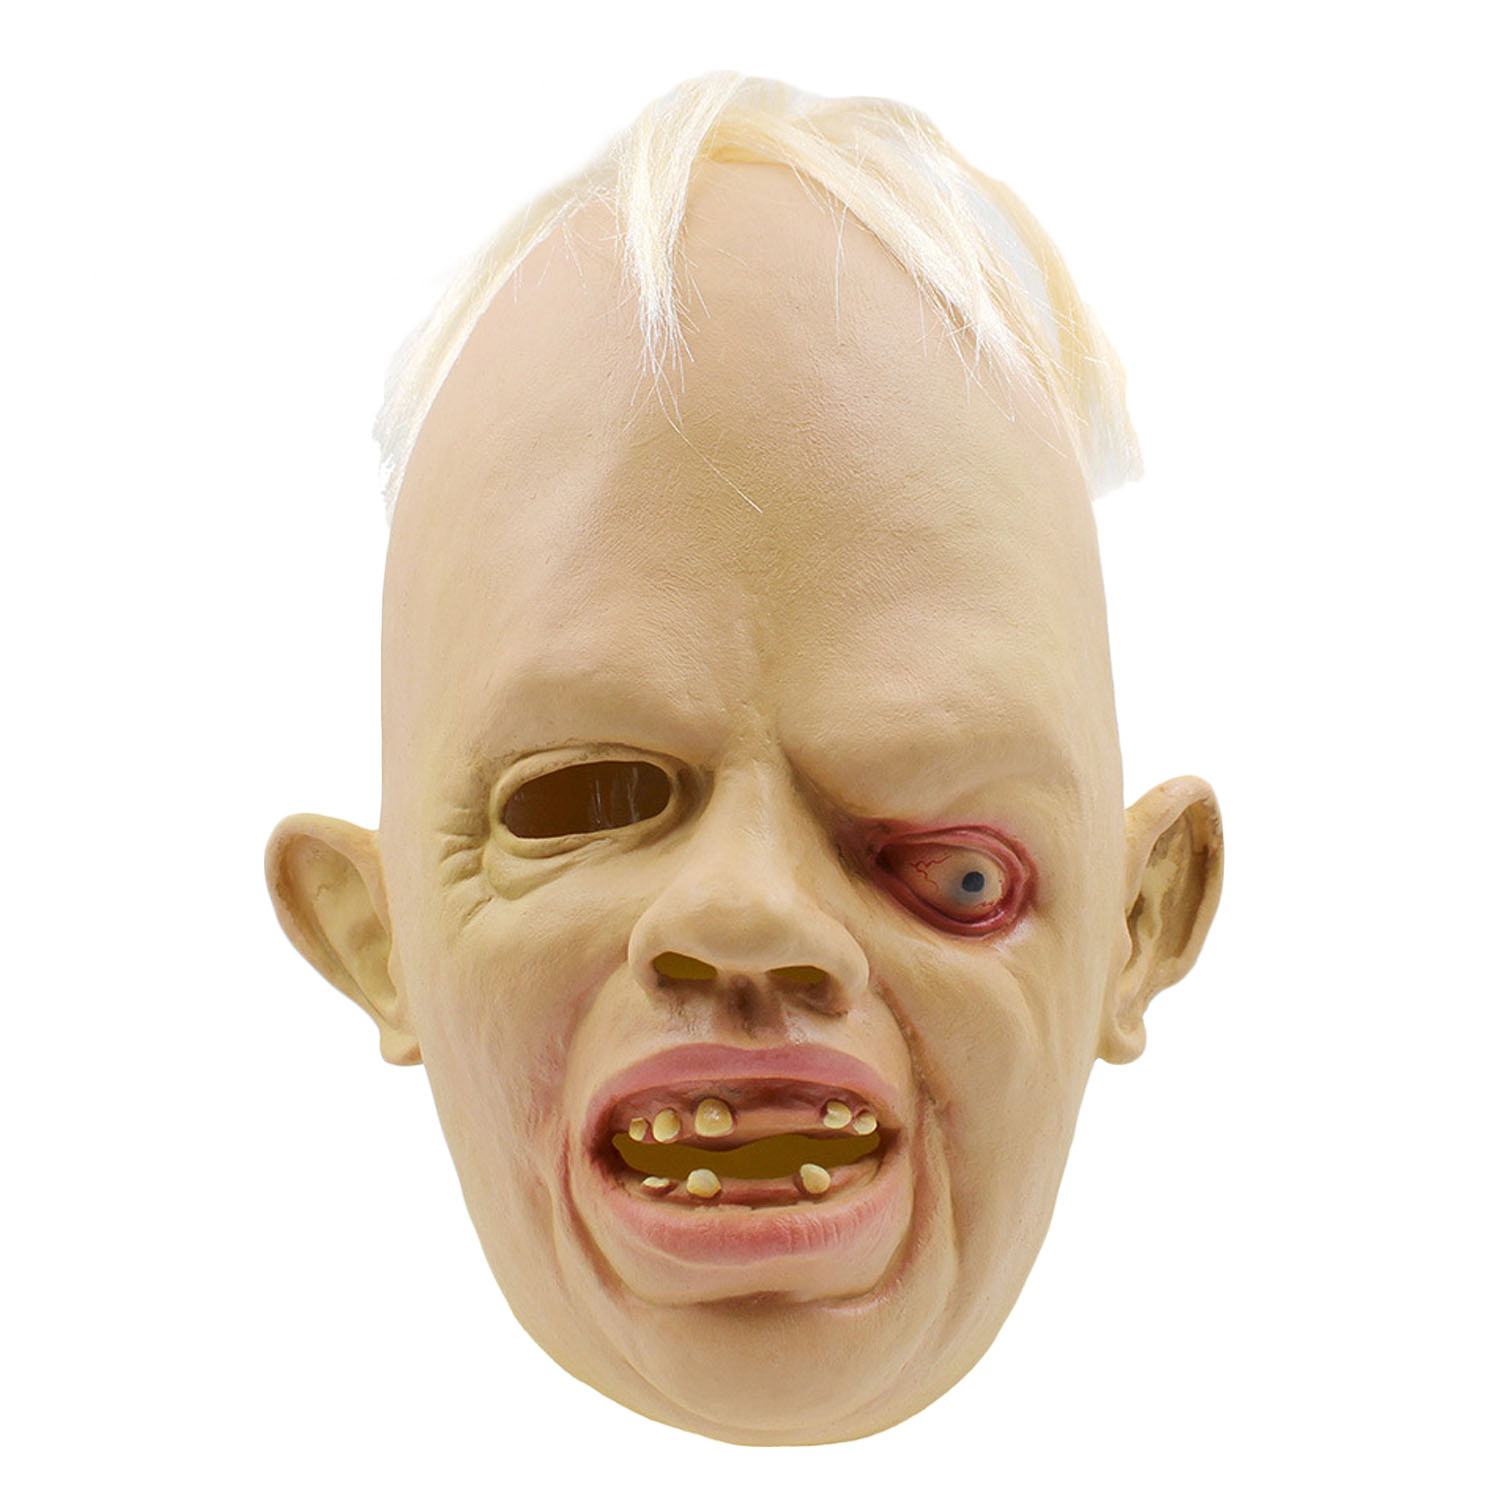 69cfd9d2 Besegad Horrible Ugly Rubber Disgusted Deformed One Eye Monster Full Face  Mask Halloween Mask Cosplay Party Costume Accessories-in Gags & Practical  Jokes ...